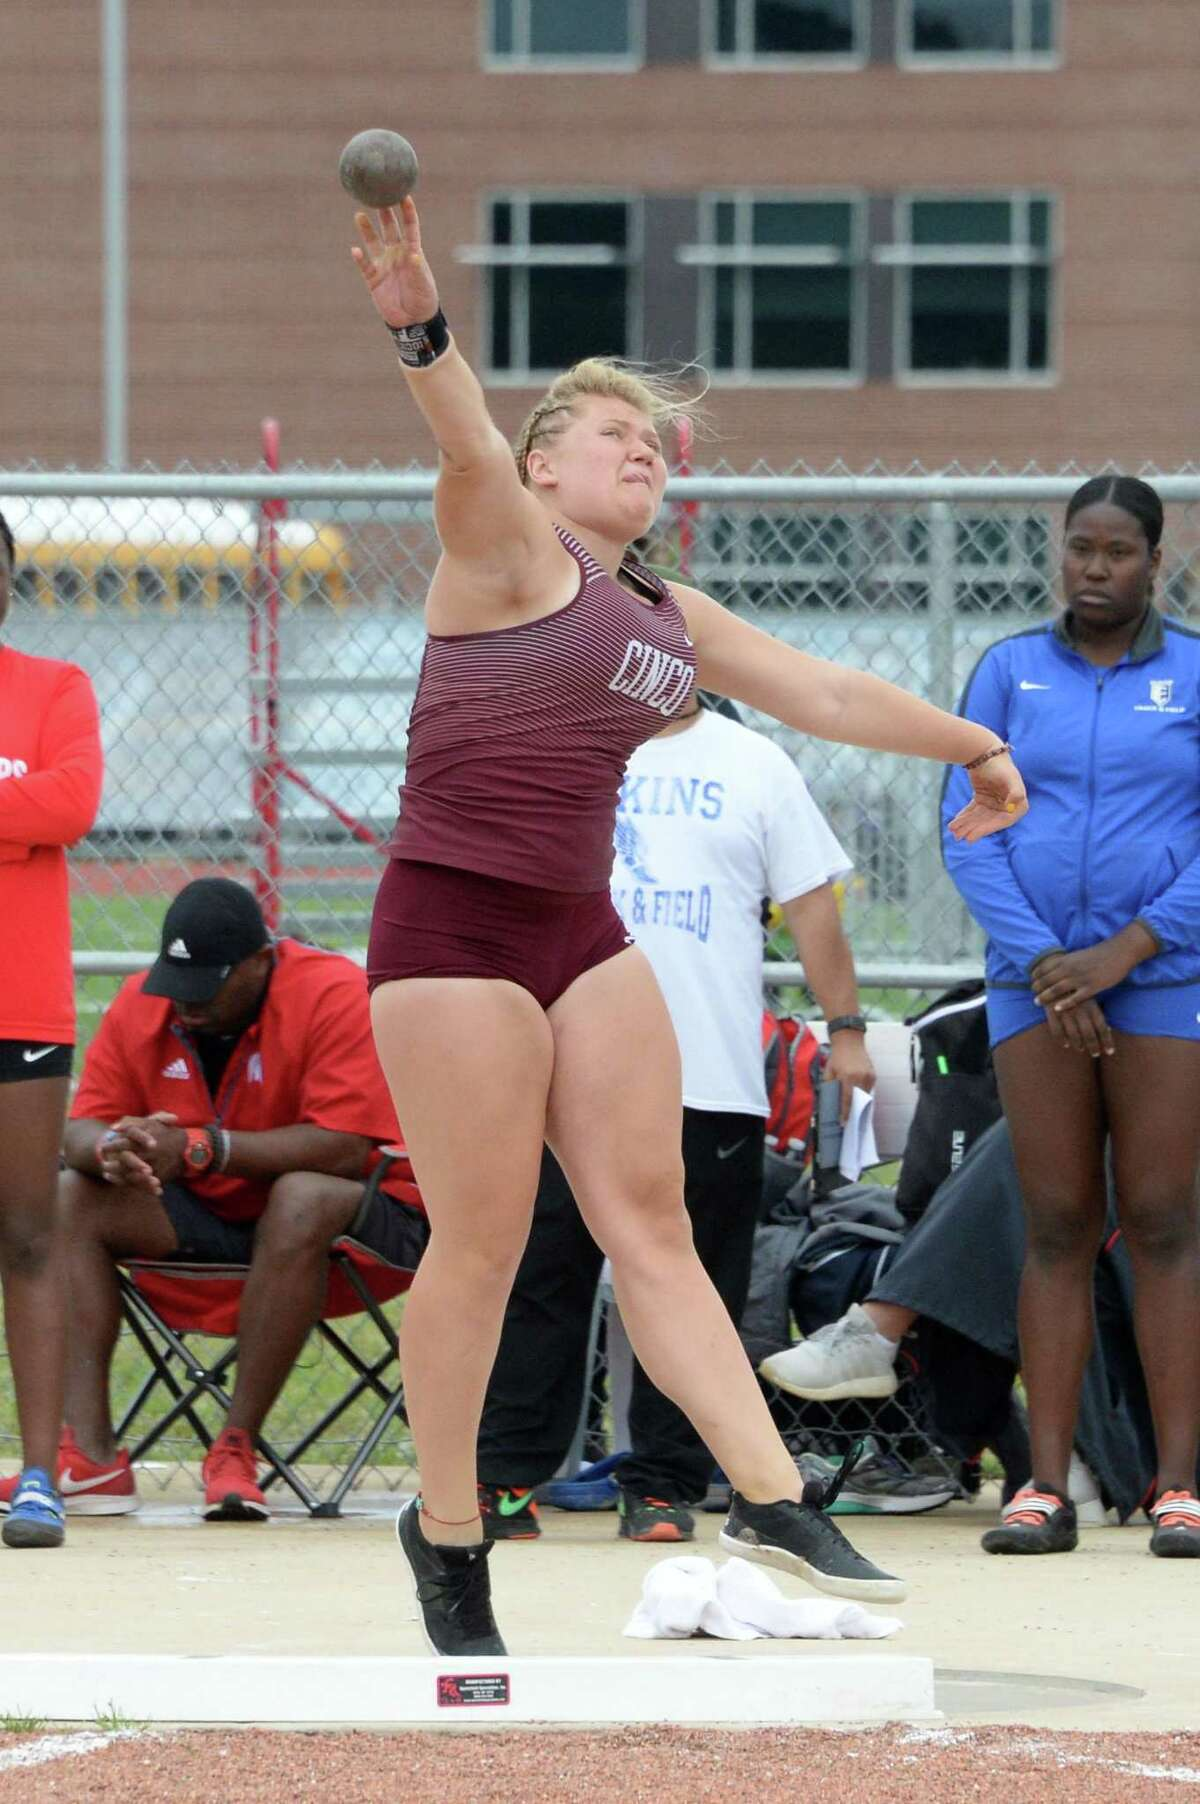 Amelia Flynt of Cinco Ranch competes in the shot put competition during the District 19/20, Region III - 6A Area Track & Field Meet on Thursday April 18, 2019 at the Paetow High School, Katy, TX.